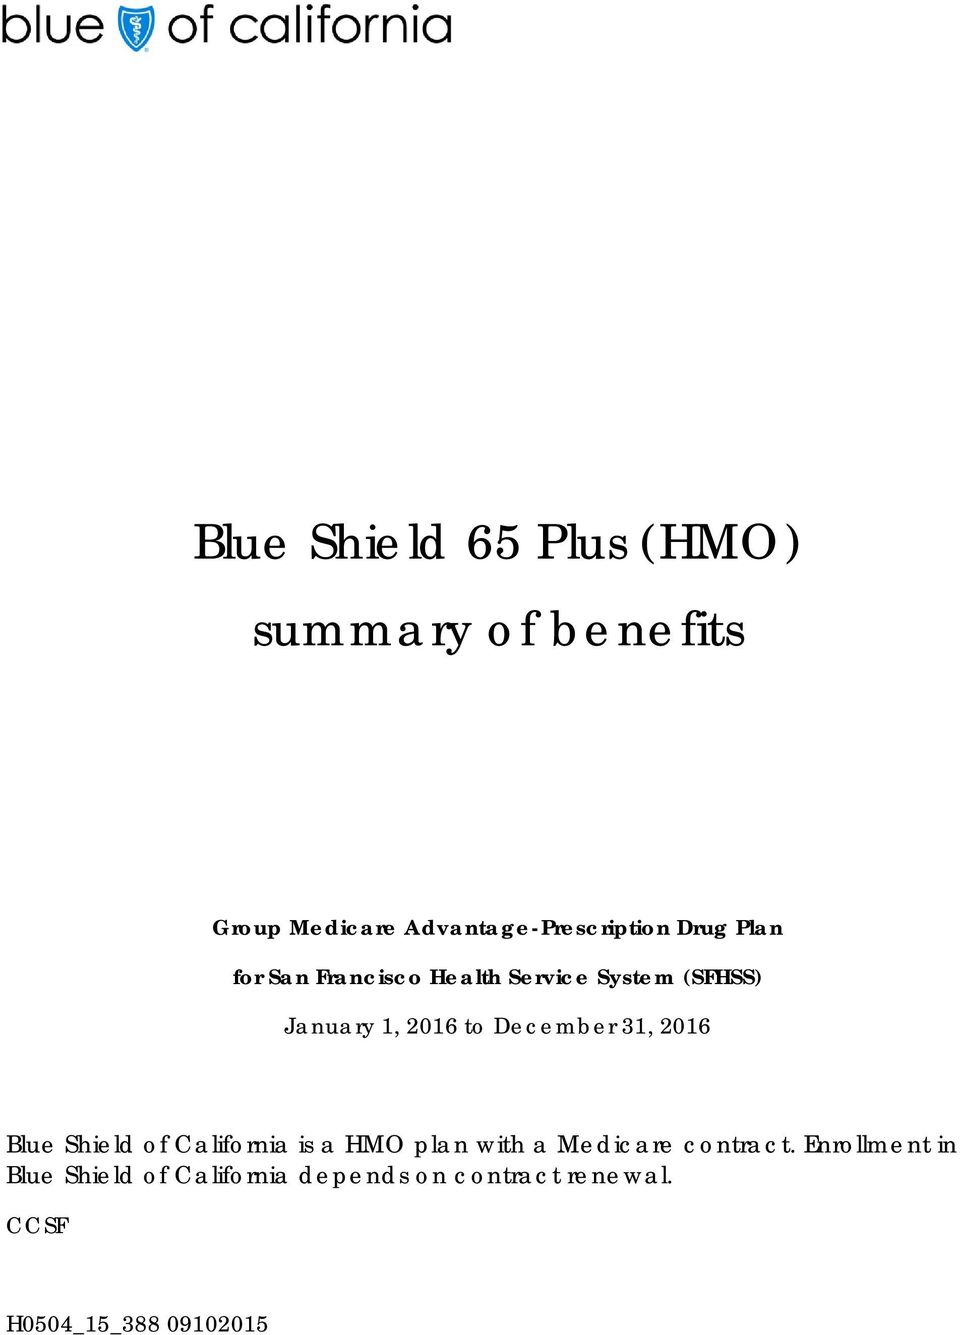 December 31, 2016 Blue Shield of California is a HMO plan with a Medicare contract.